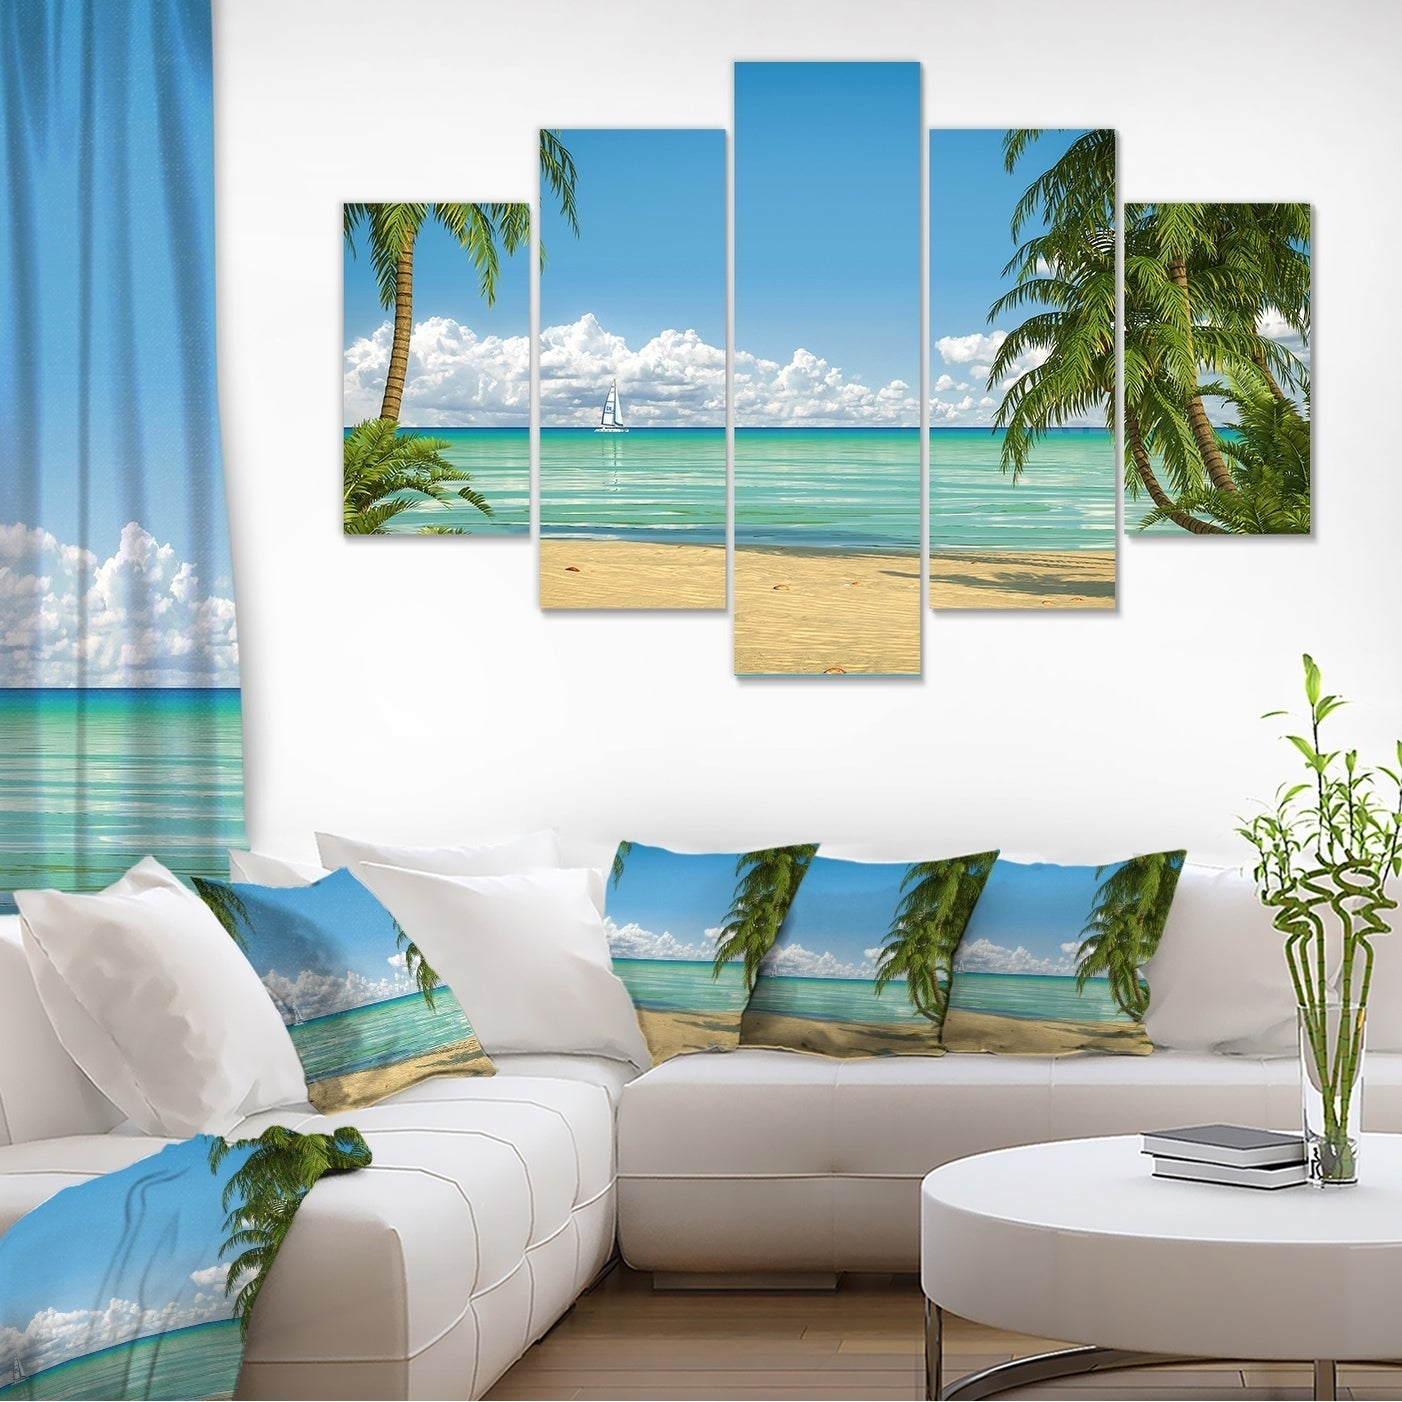 Palms-at-Caribbean-Beach-Seashore-Photo-Canvas-Art-Print-Small thumbnail 7